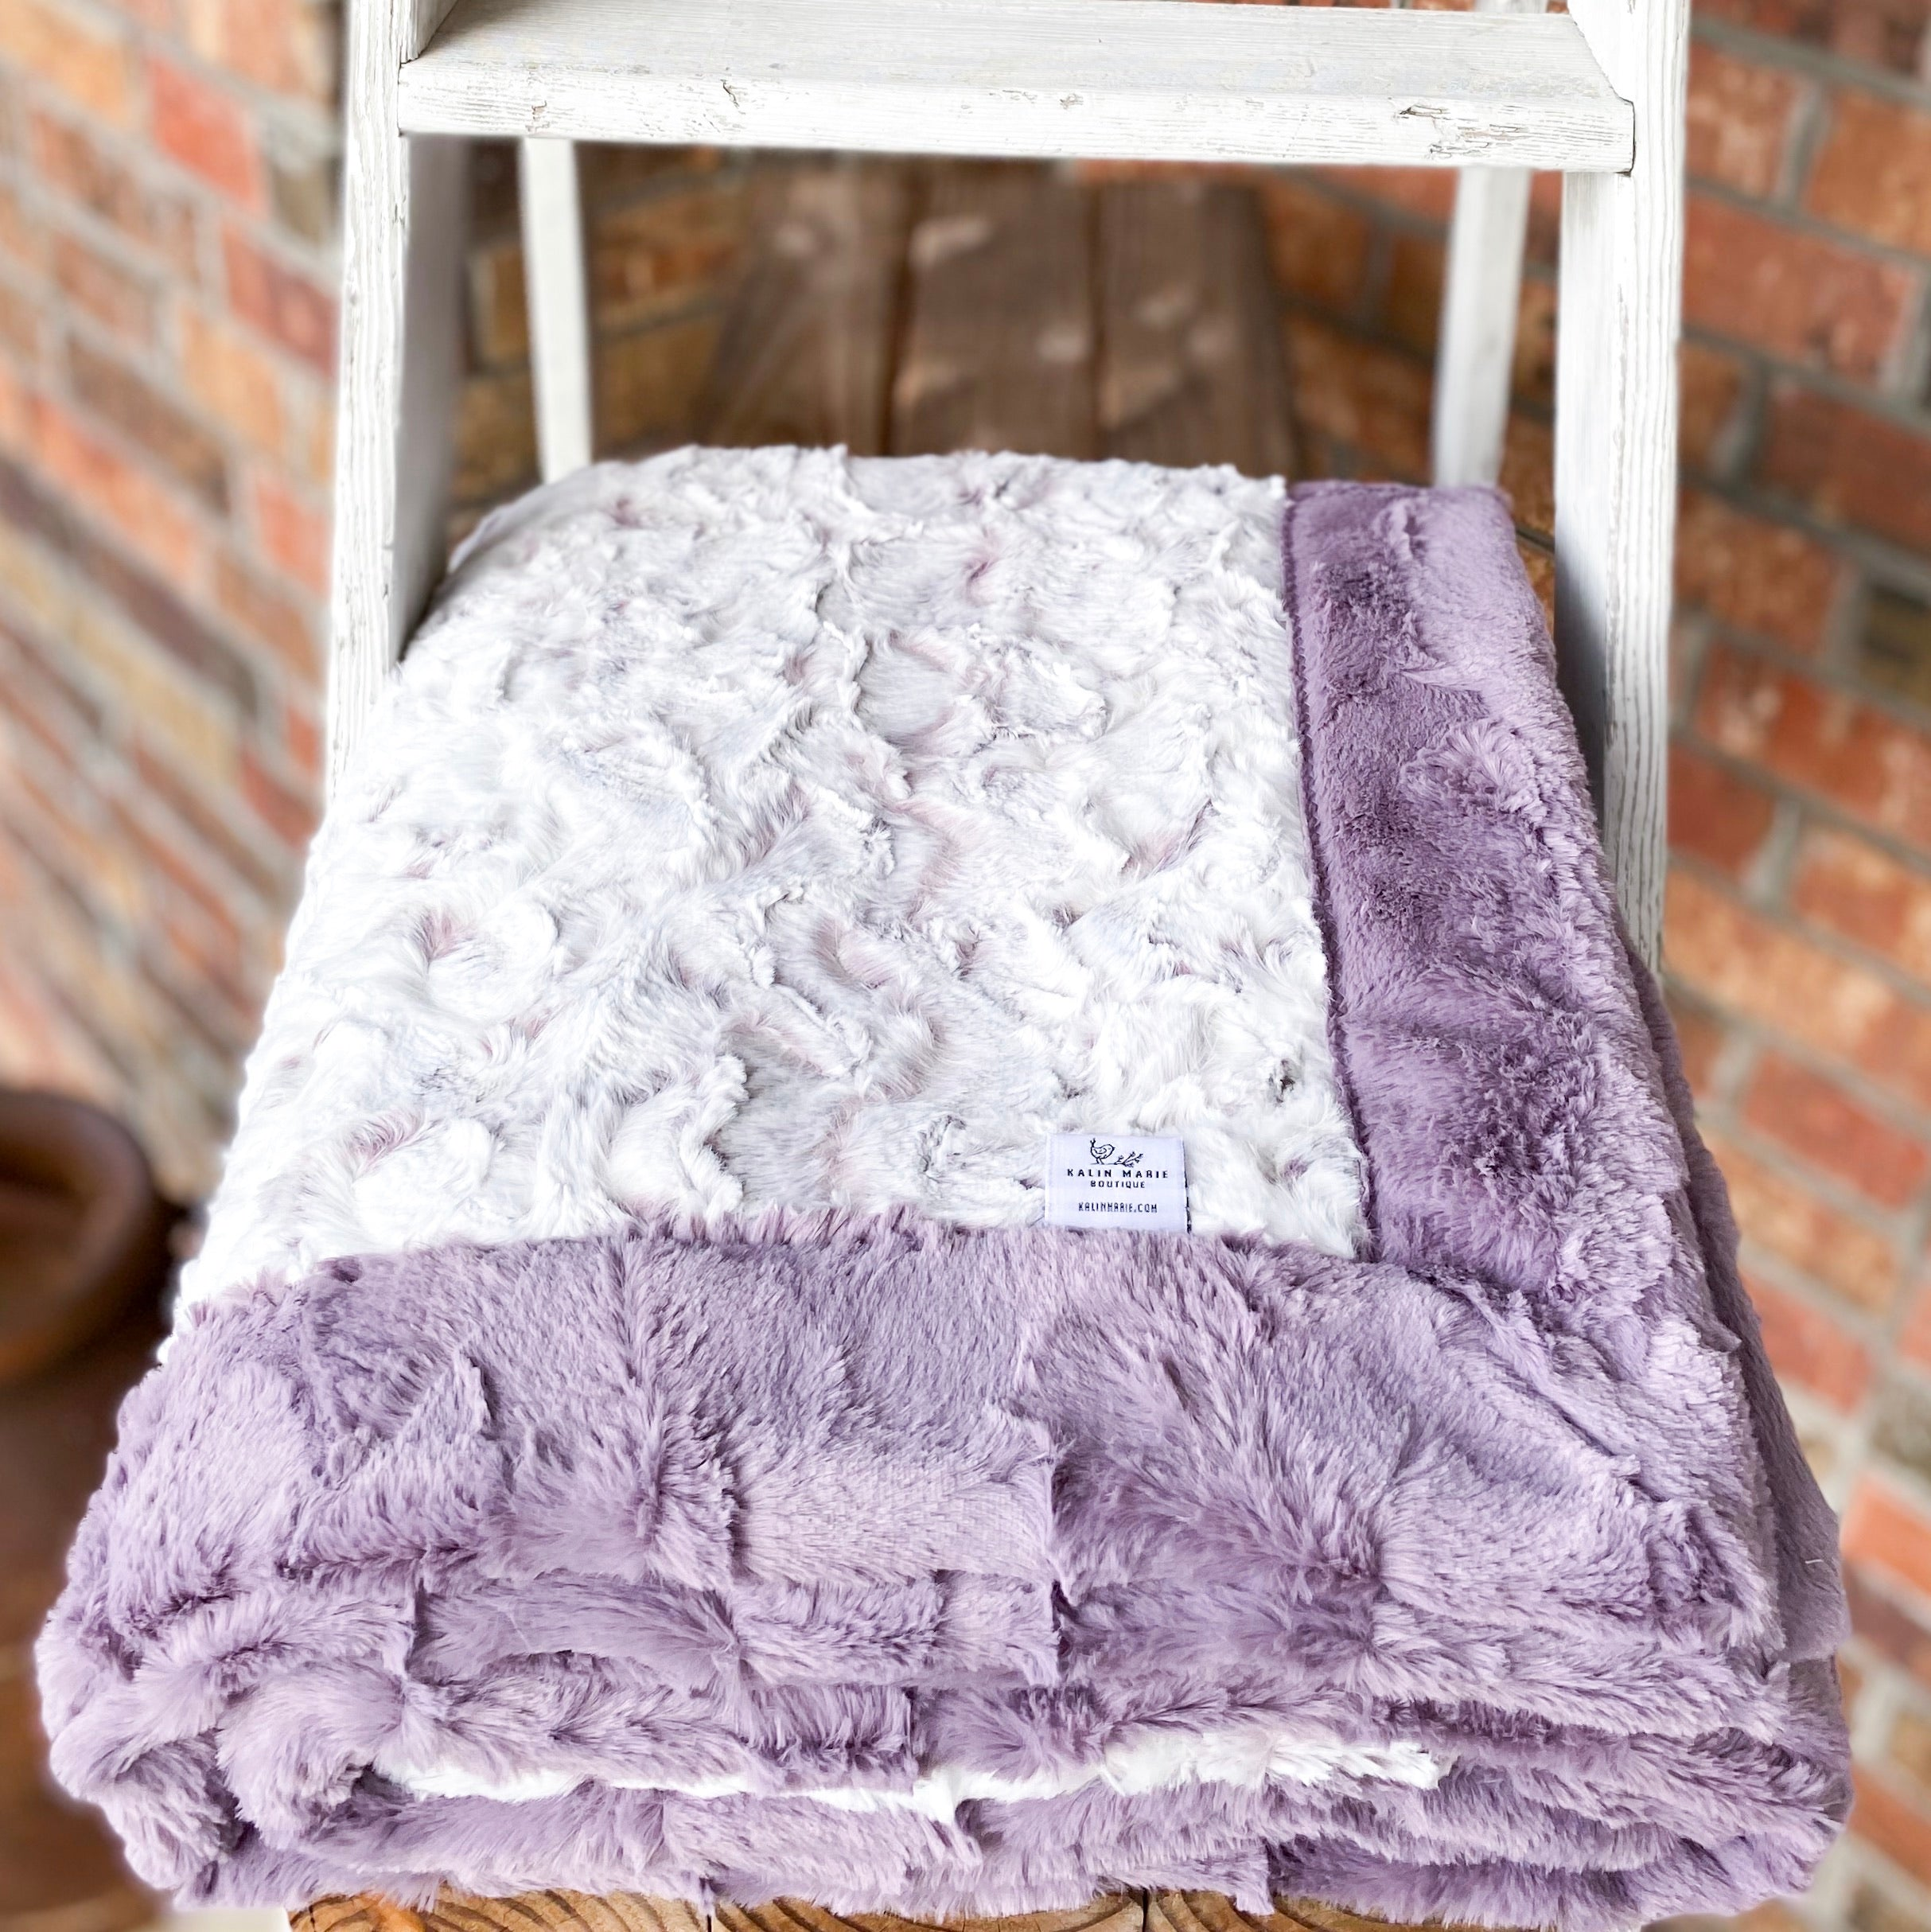 Easy Order Snowy Owl Elderberry & Elderberry Hide Double Luxe Blanket